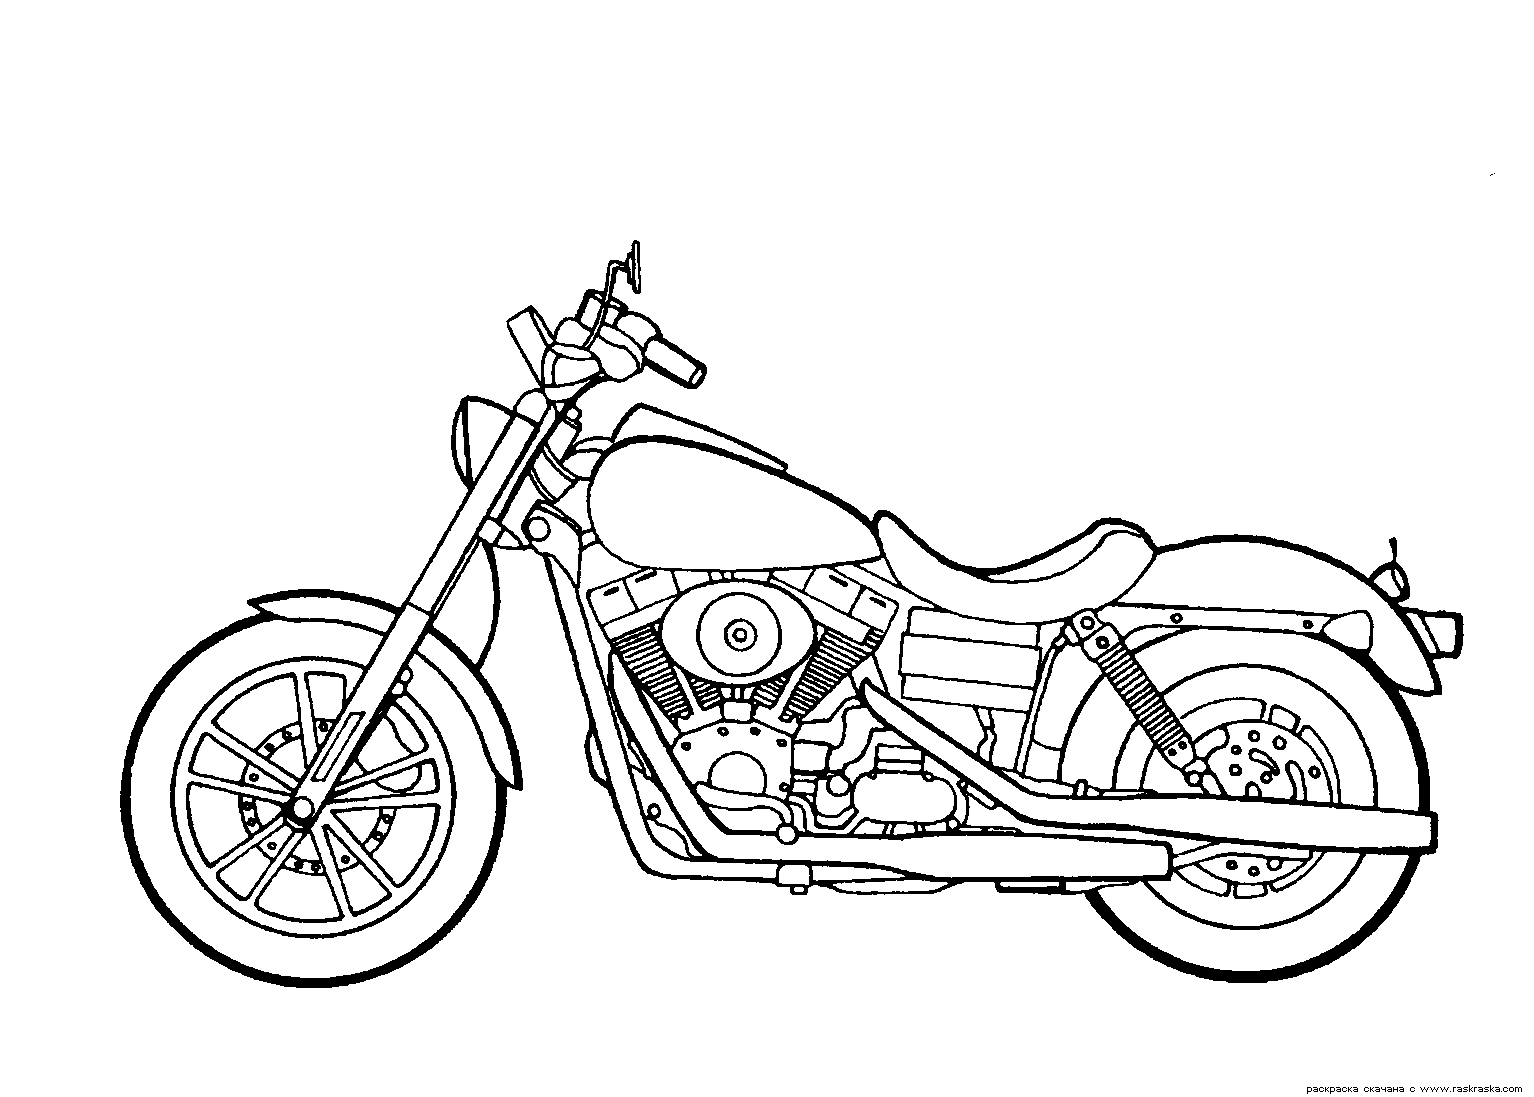 Motorcycle Simple Drawing At Getdrawings